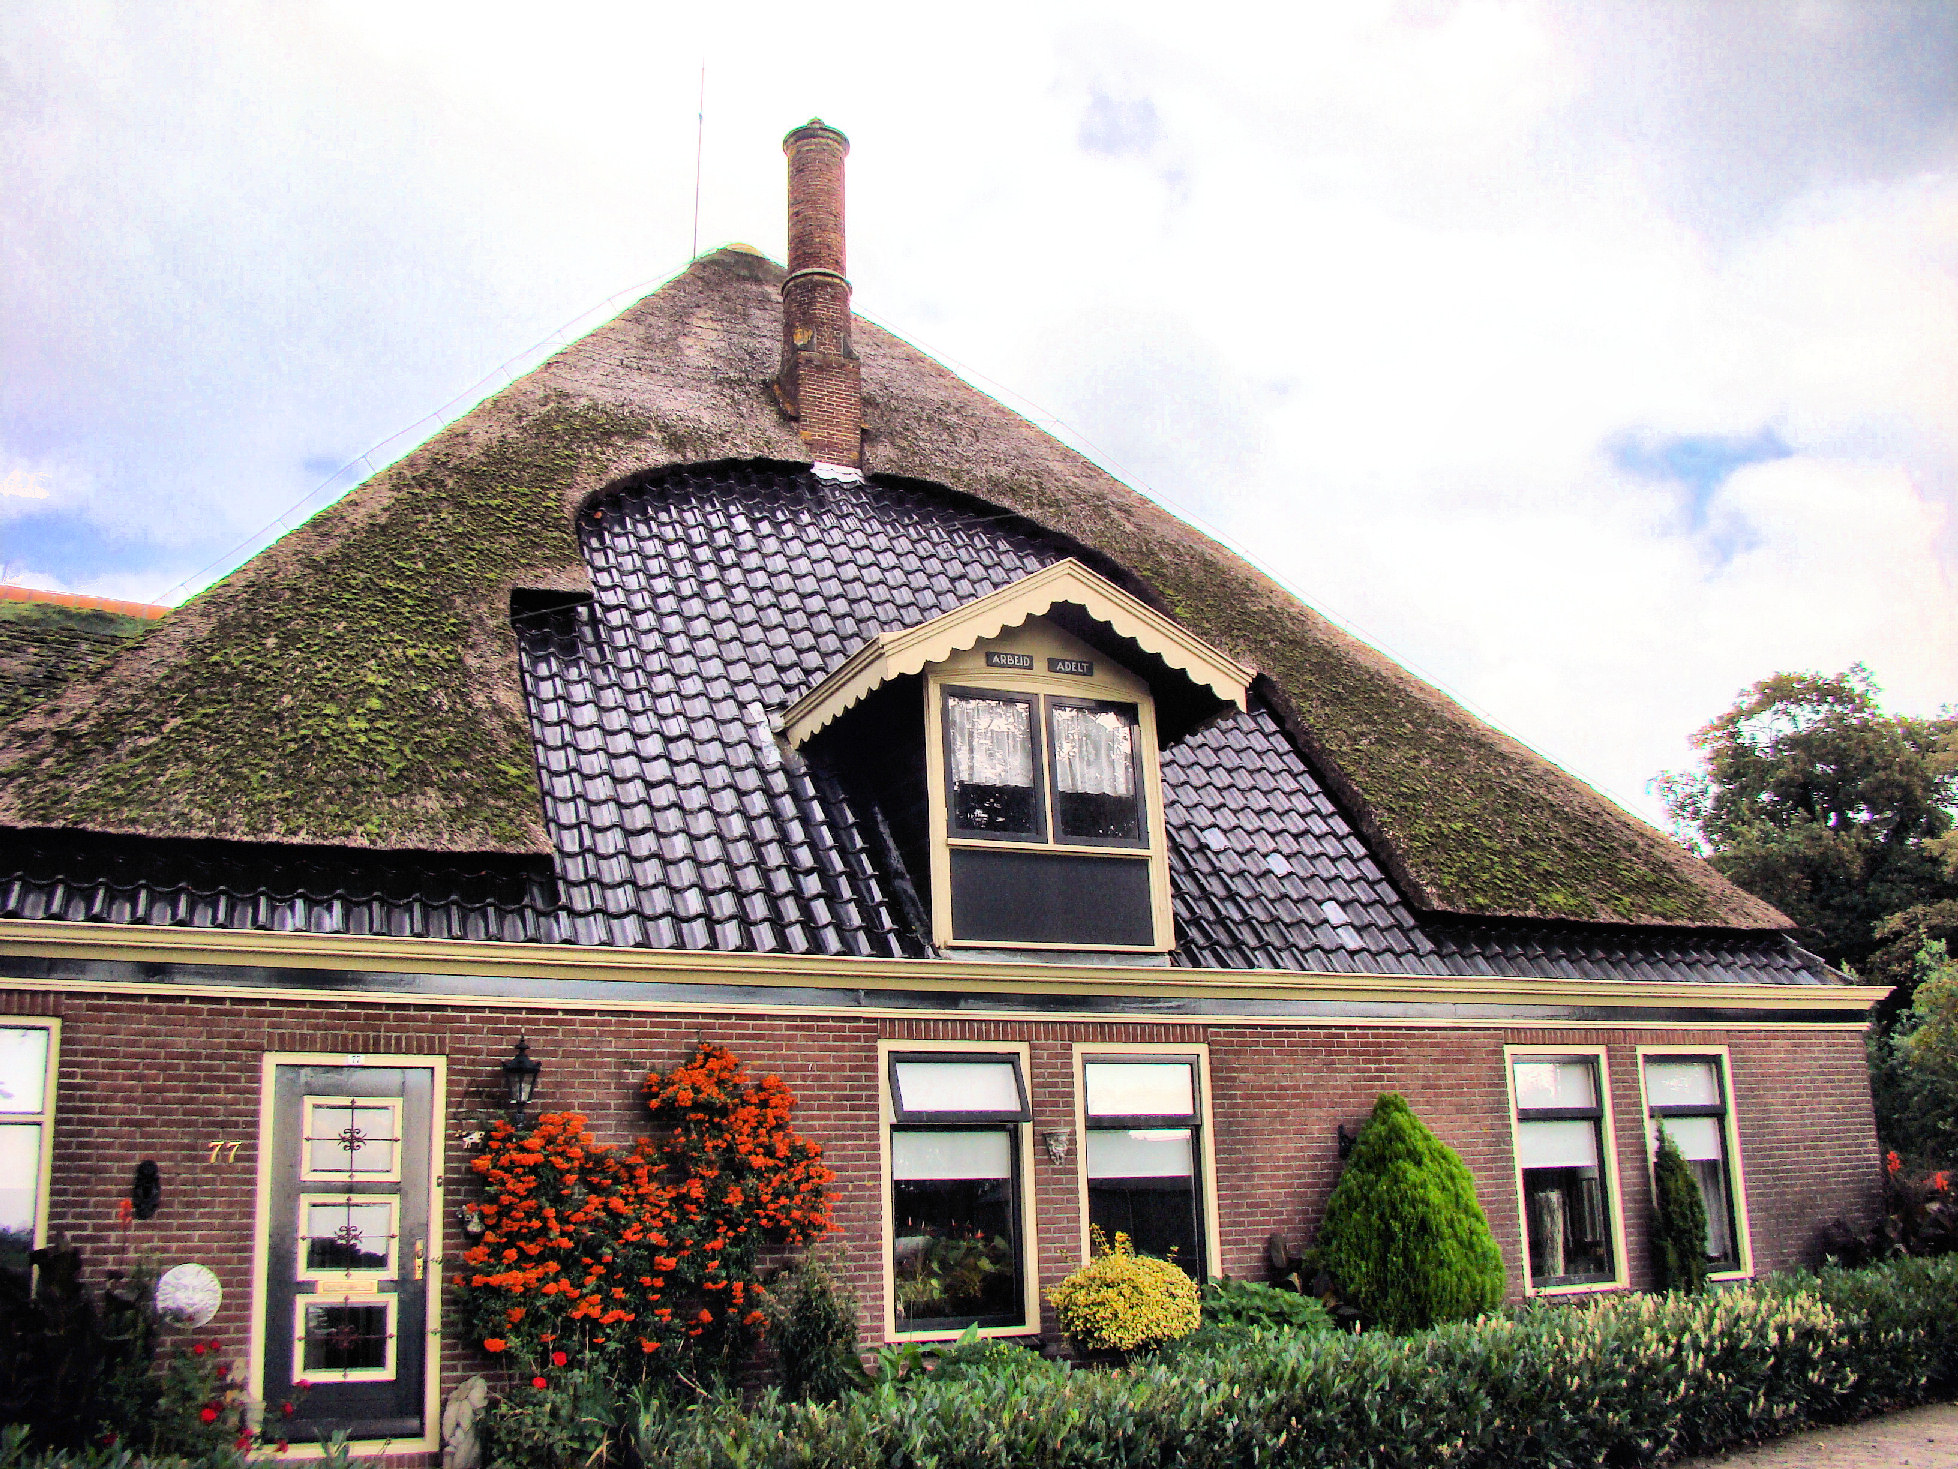 File:Wiki thatched roof 2b.jpg - Wikimedia Commons